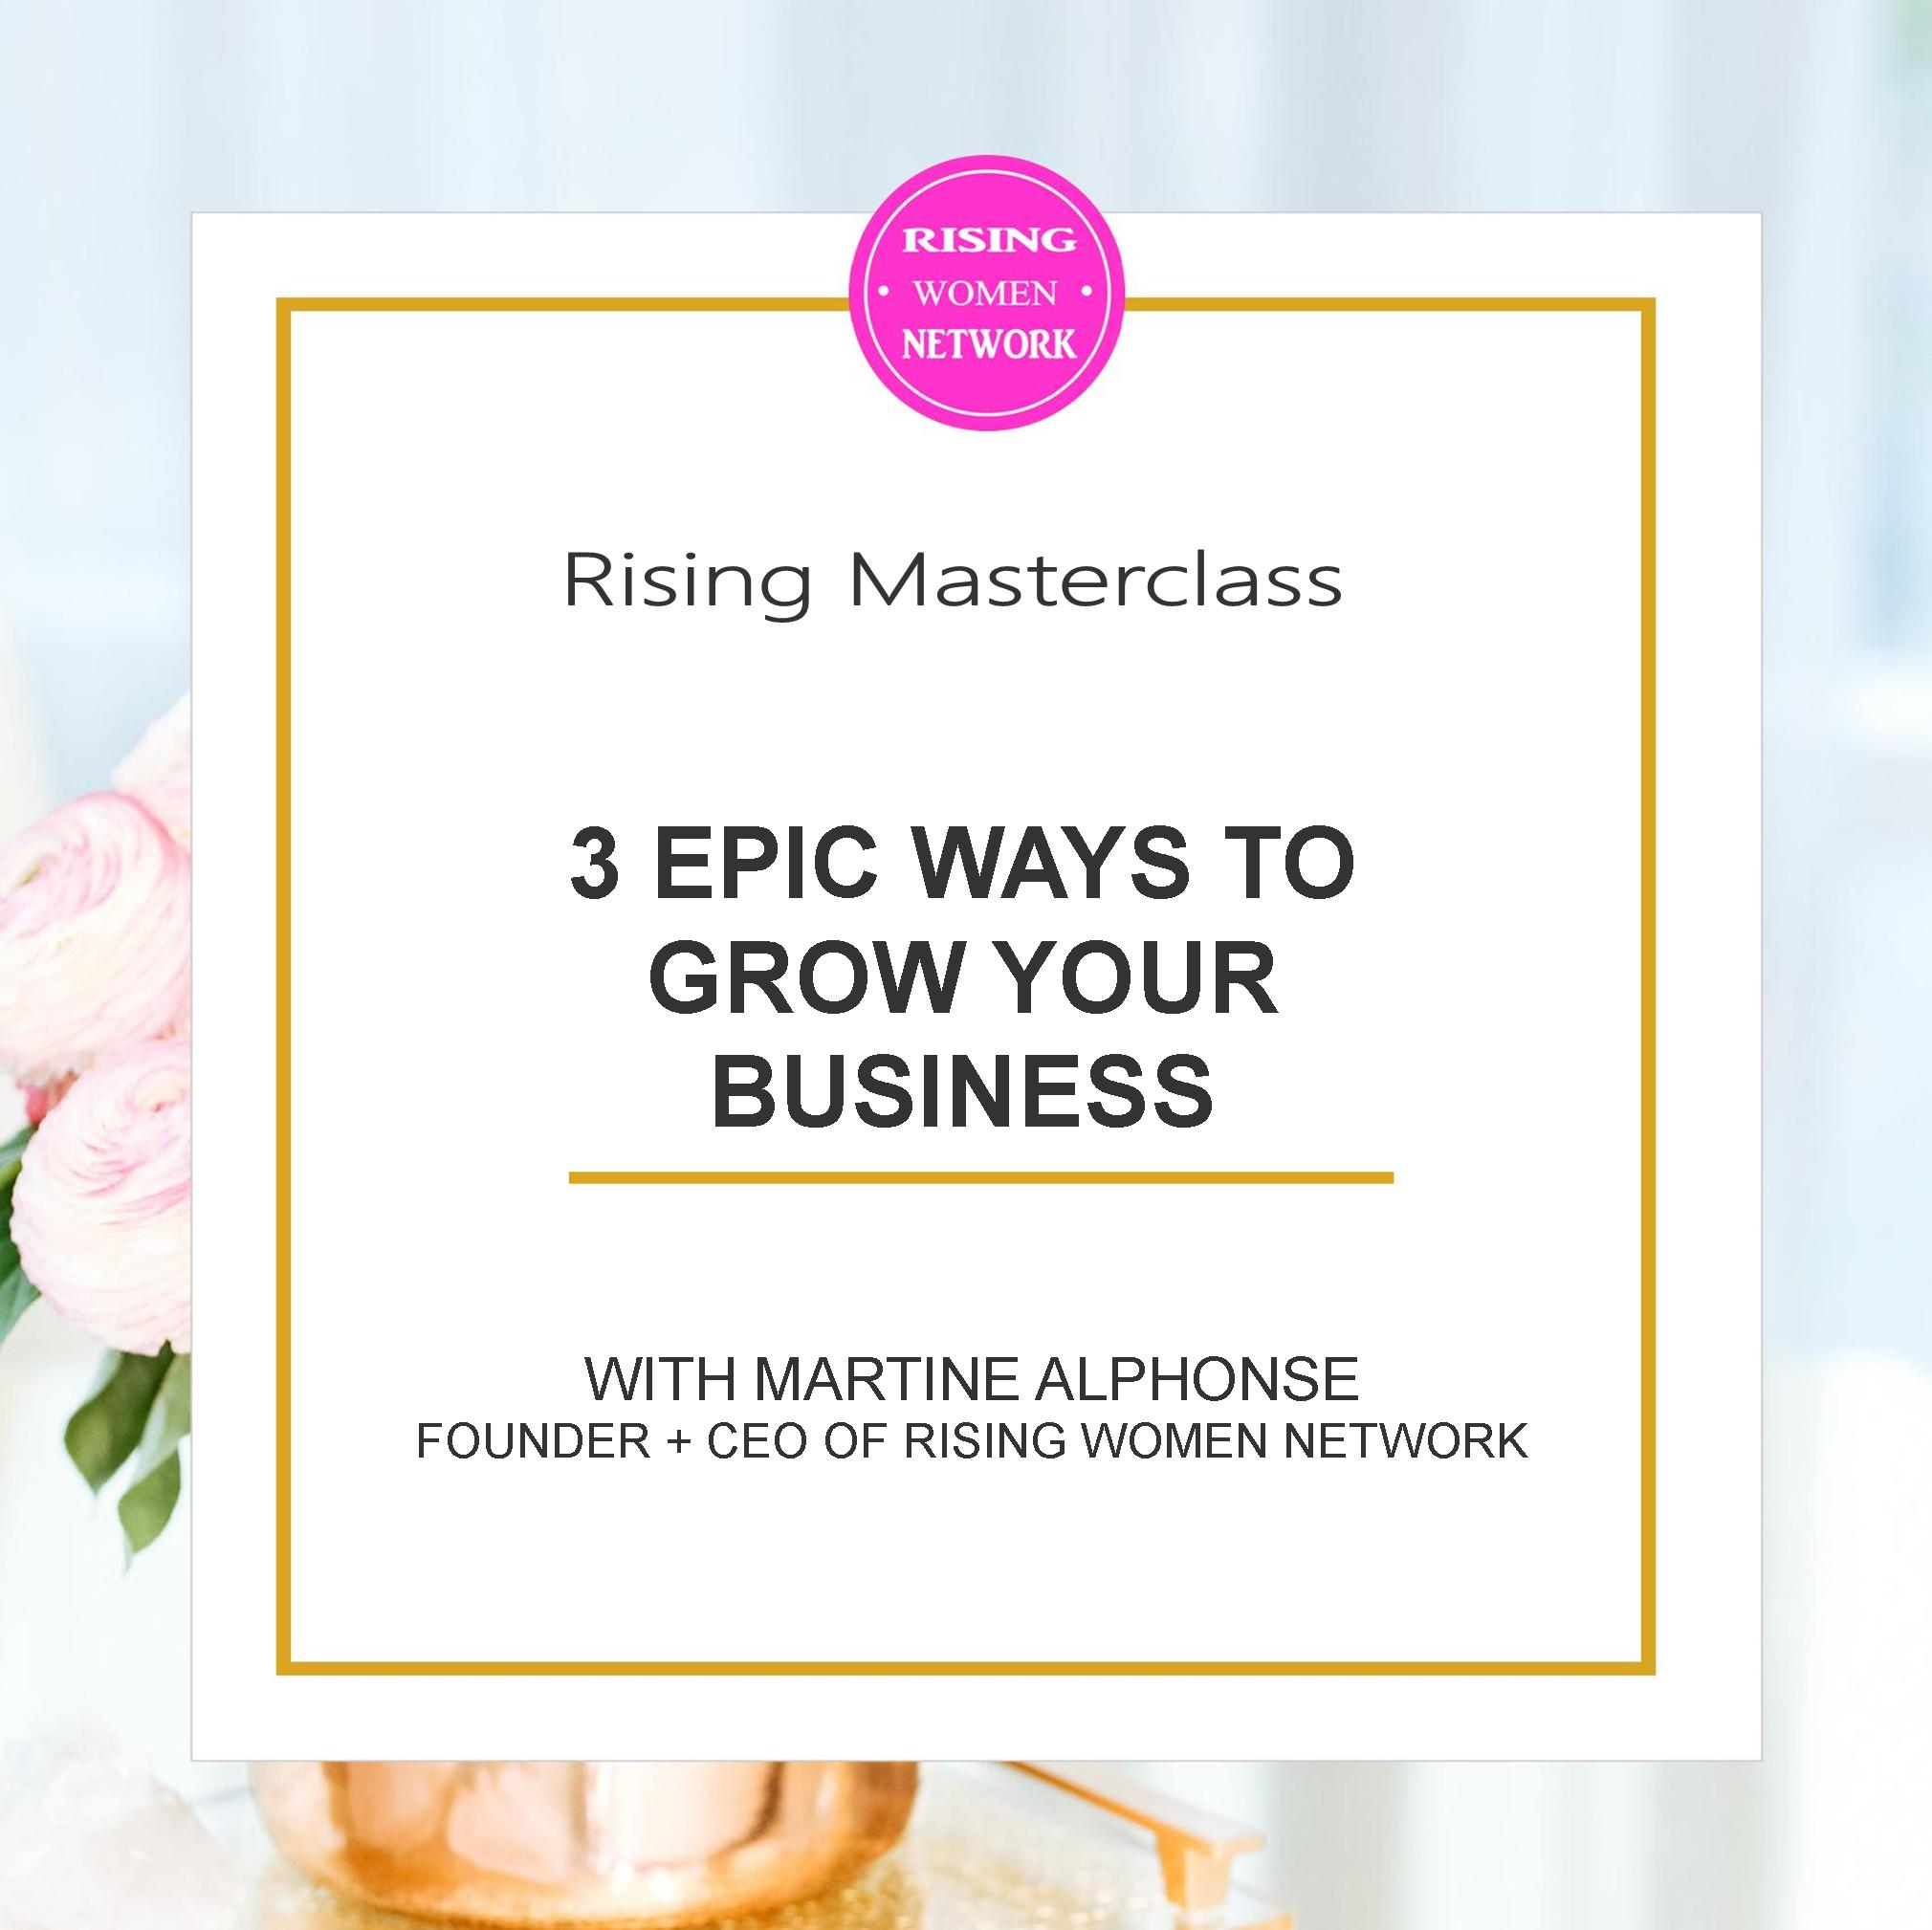 For growing my business, these areliterallythe 3 things that I myself have focused on that have allowed me to build a thriving online business.